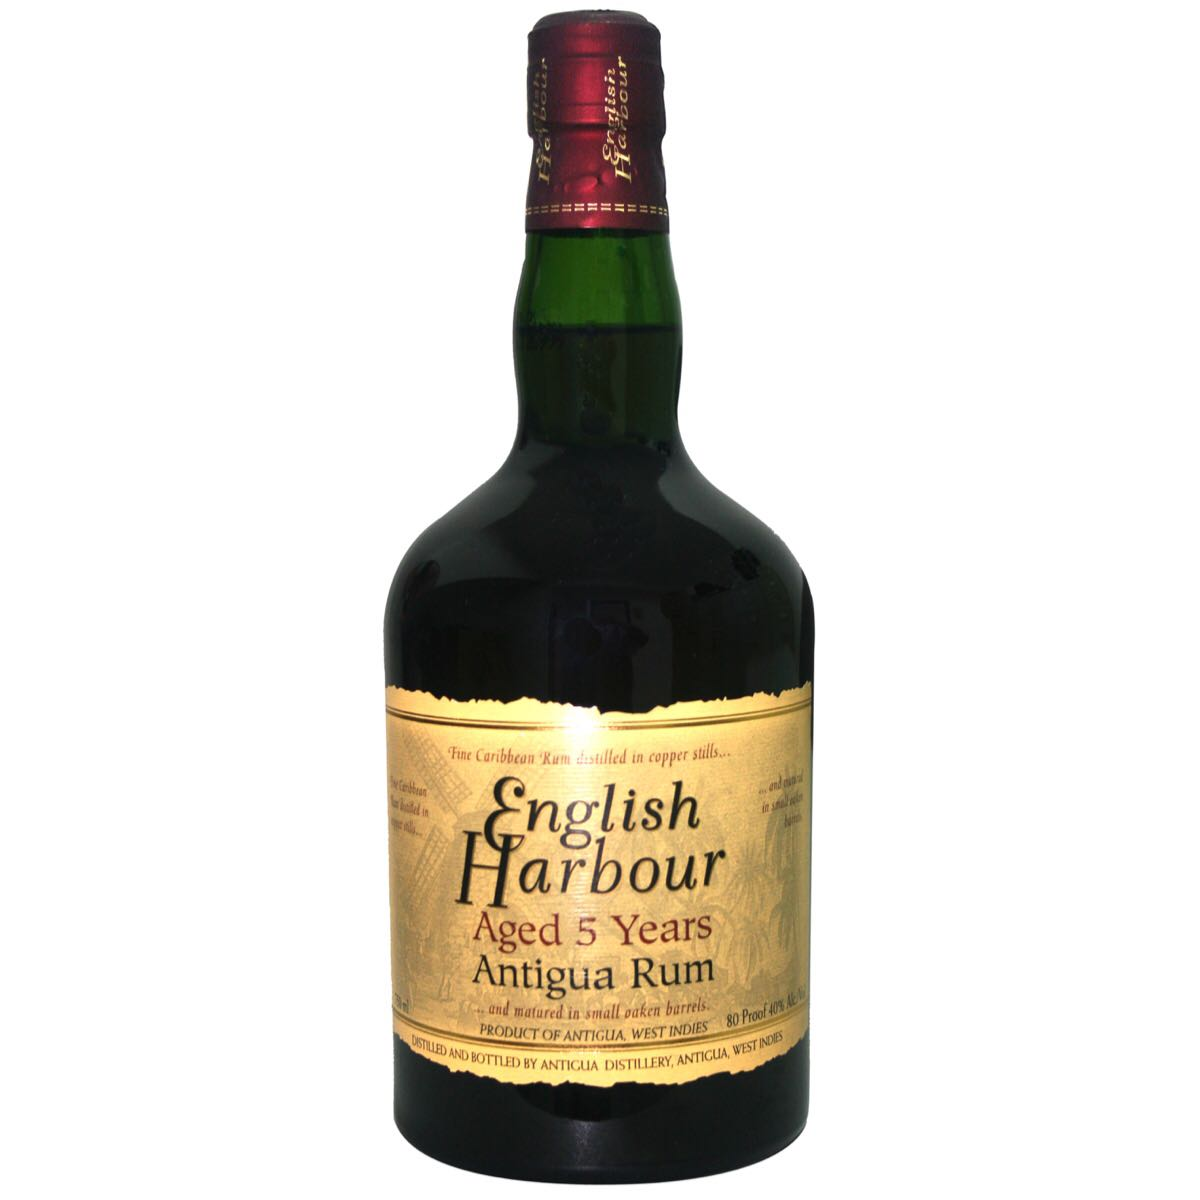 Bottle image of English Harbour 5 Years